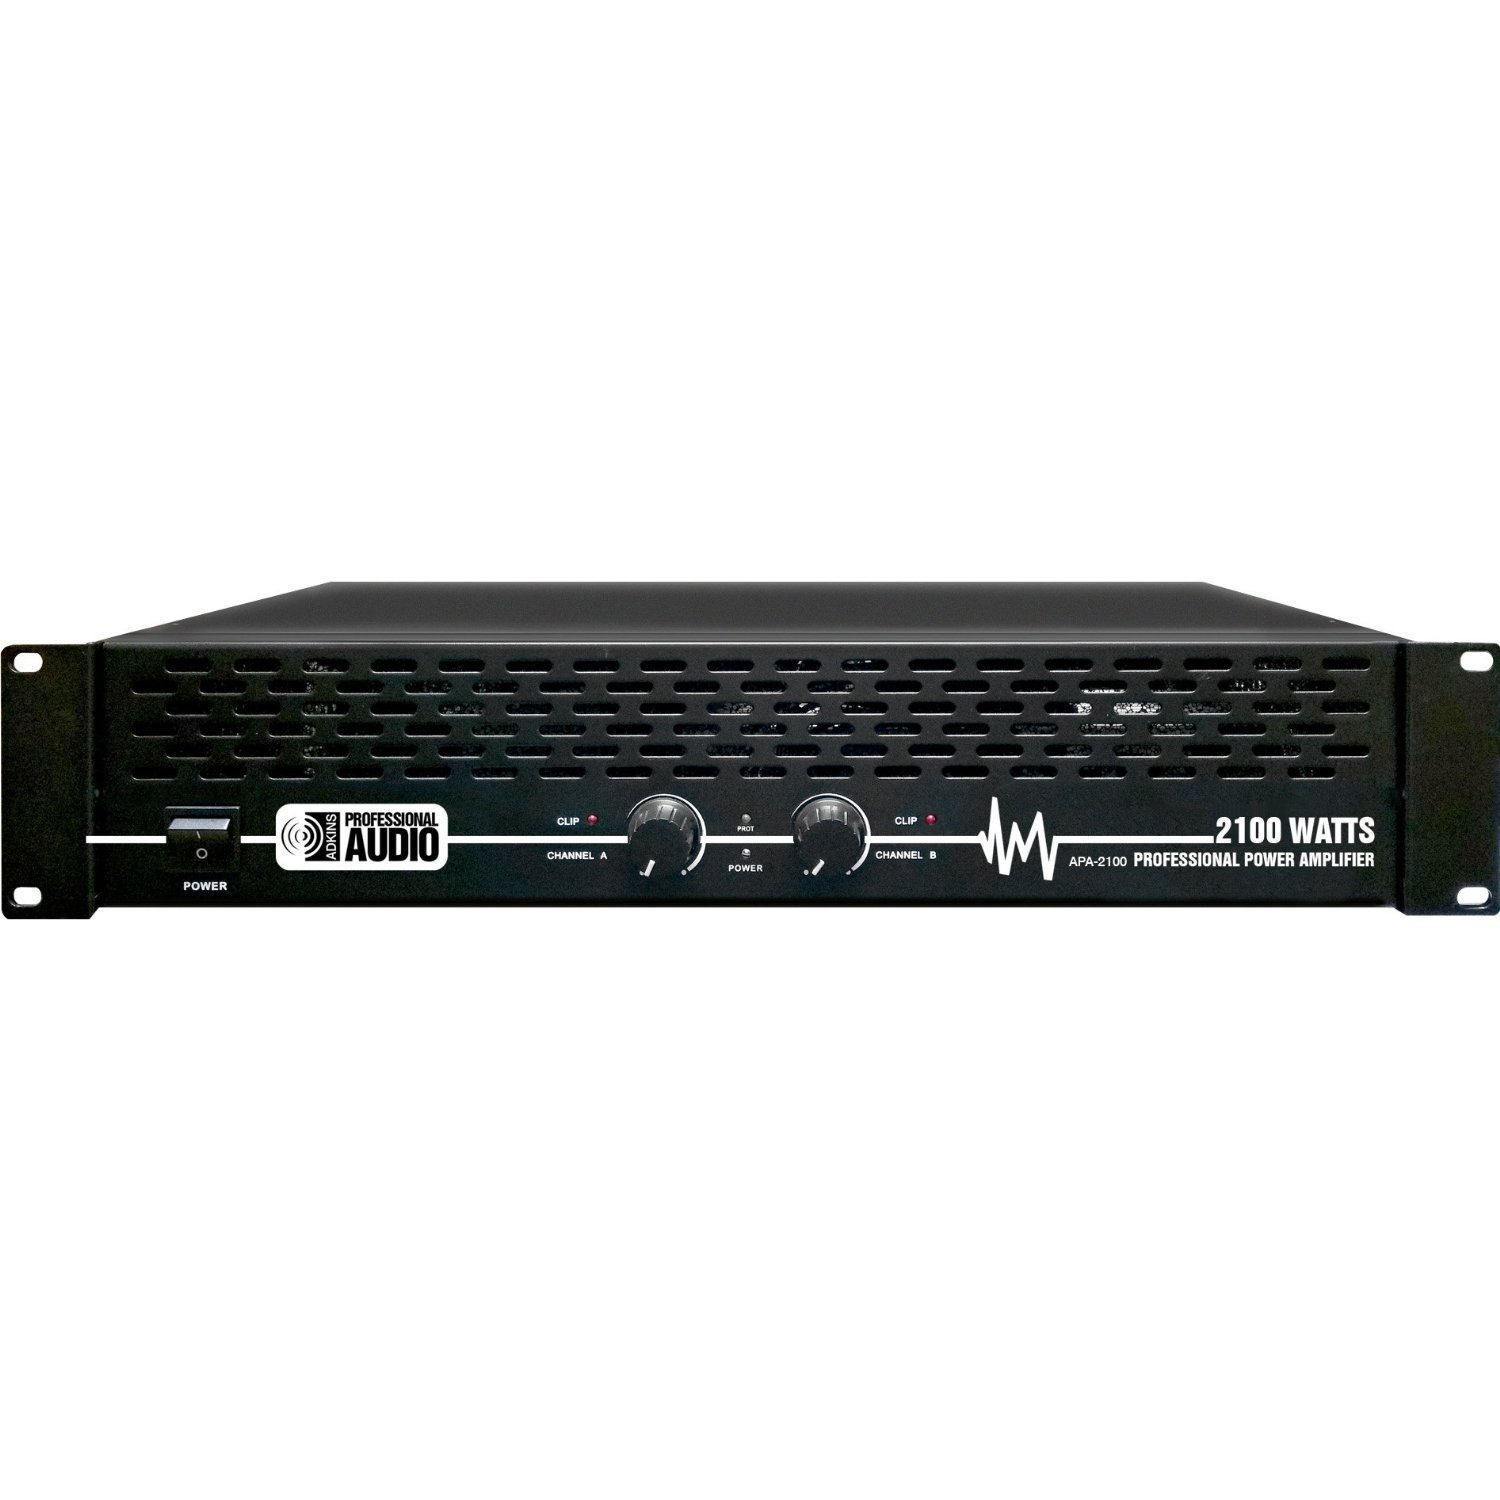 2100 Watt Professional DJ Power Amplifier - Adkins Pro Audio - Quality Audio at Affordable Prices! by Adkins Professional Audio